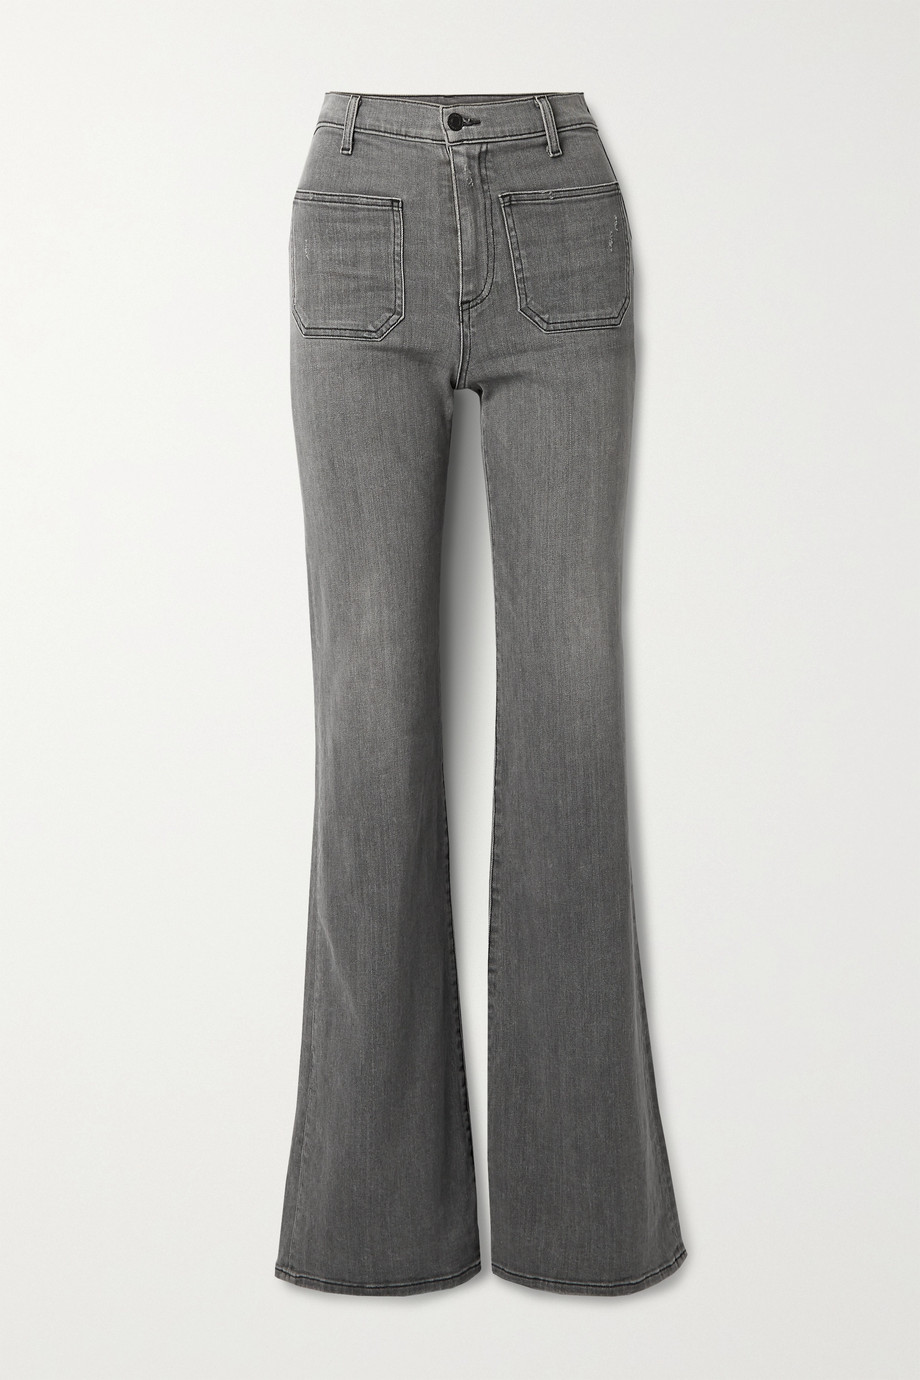 NILI LOTAN Florence distressed high-rise flared jeans